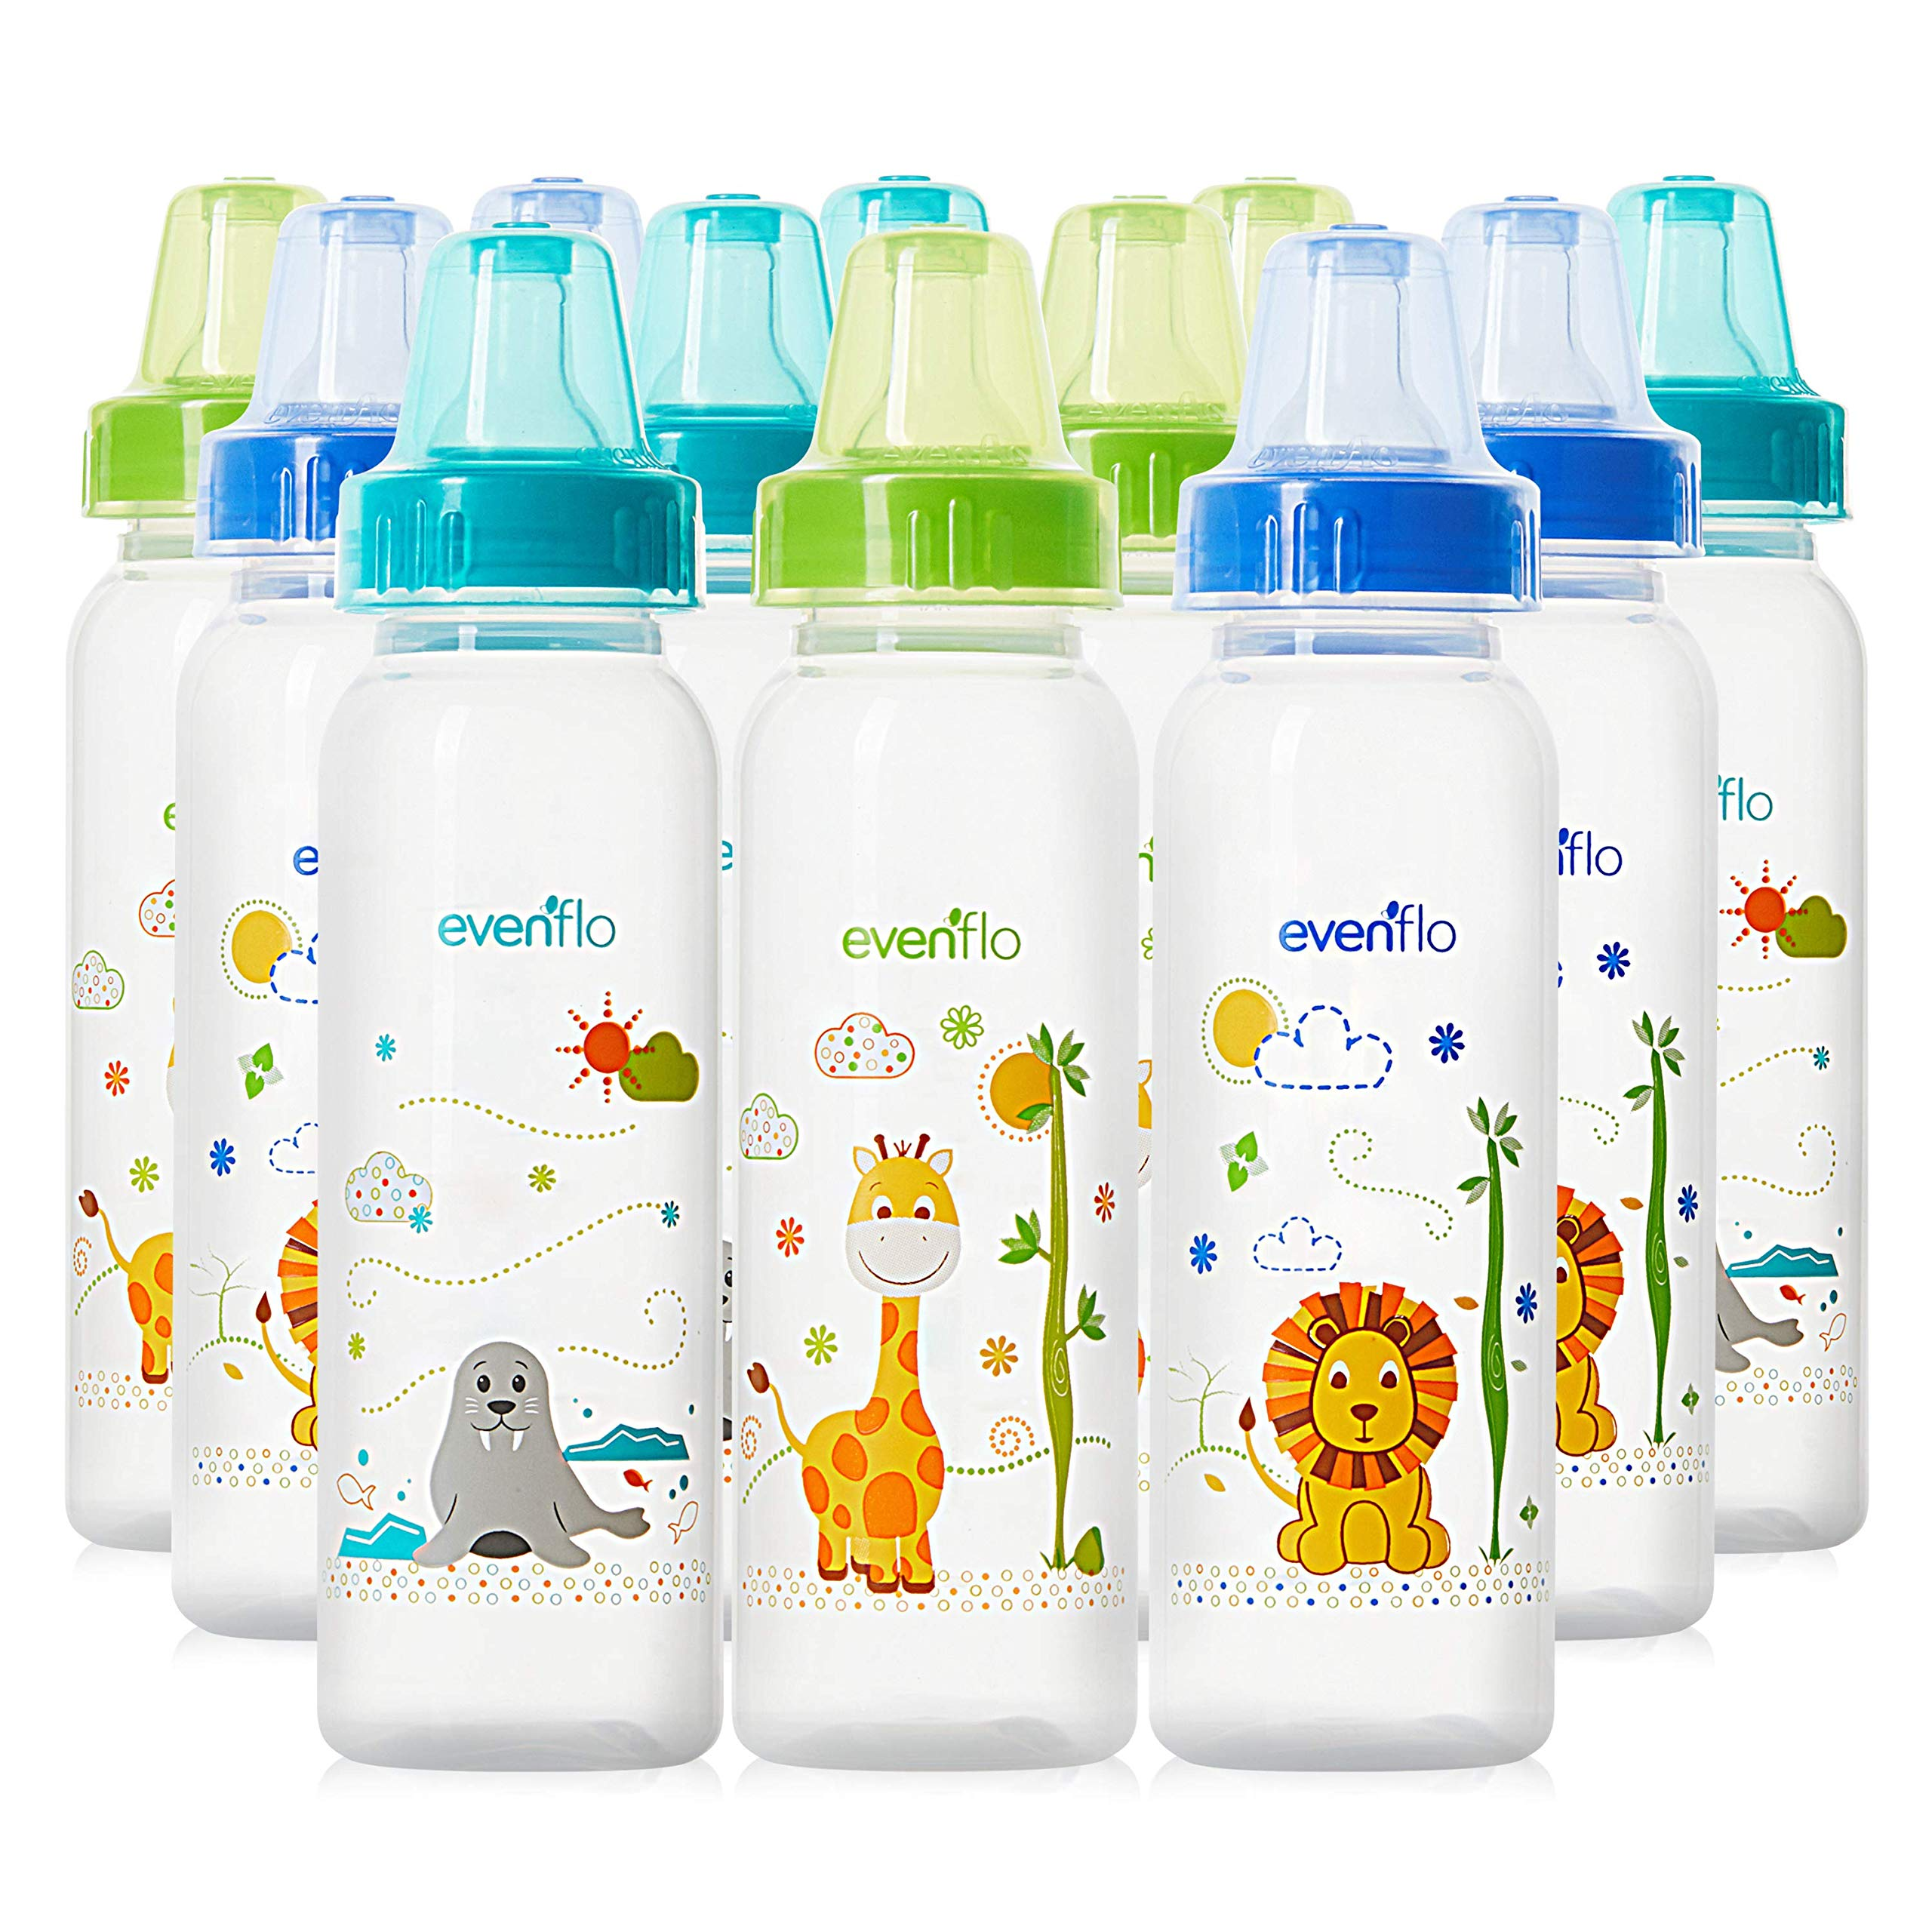 Evenflo Feeding Zoo Friends Polypropylene Bottles for Baby, Infant and Newborn - Blue/Green/Orange, 8 Ounce (Pack of 12) by Evenflo Feeding